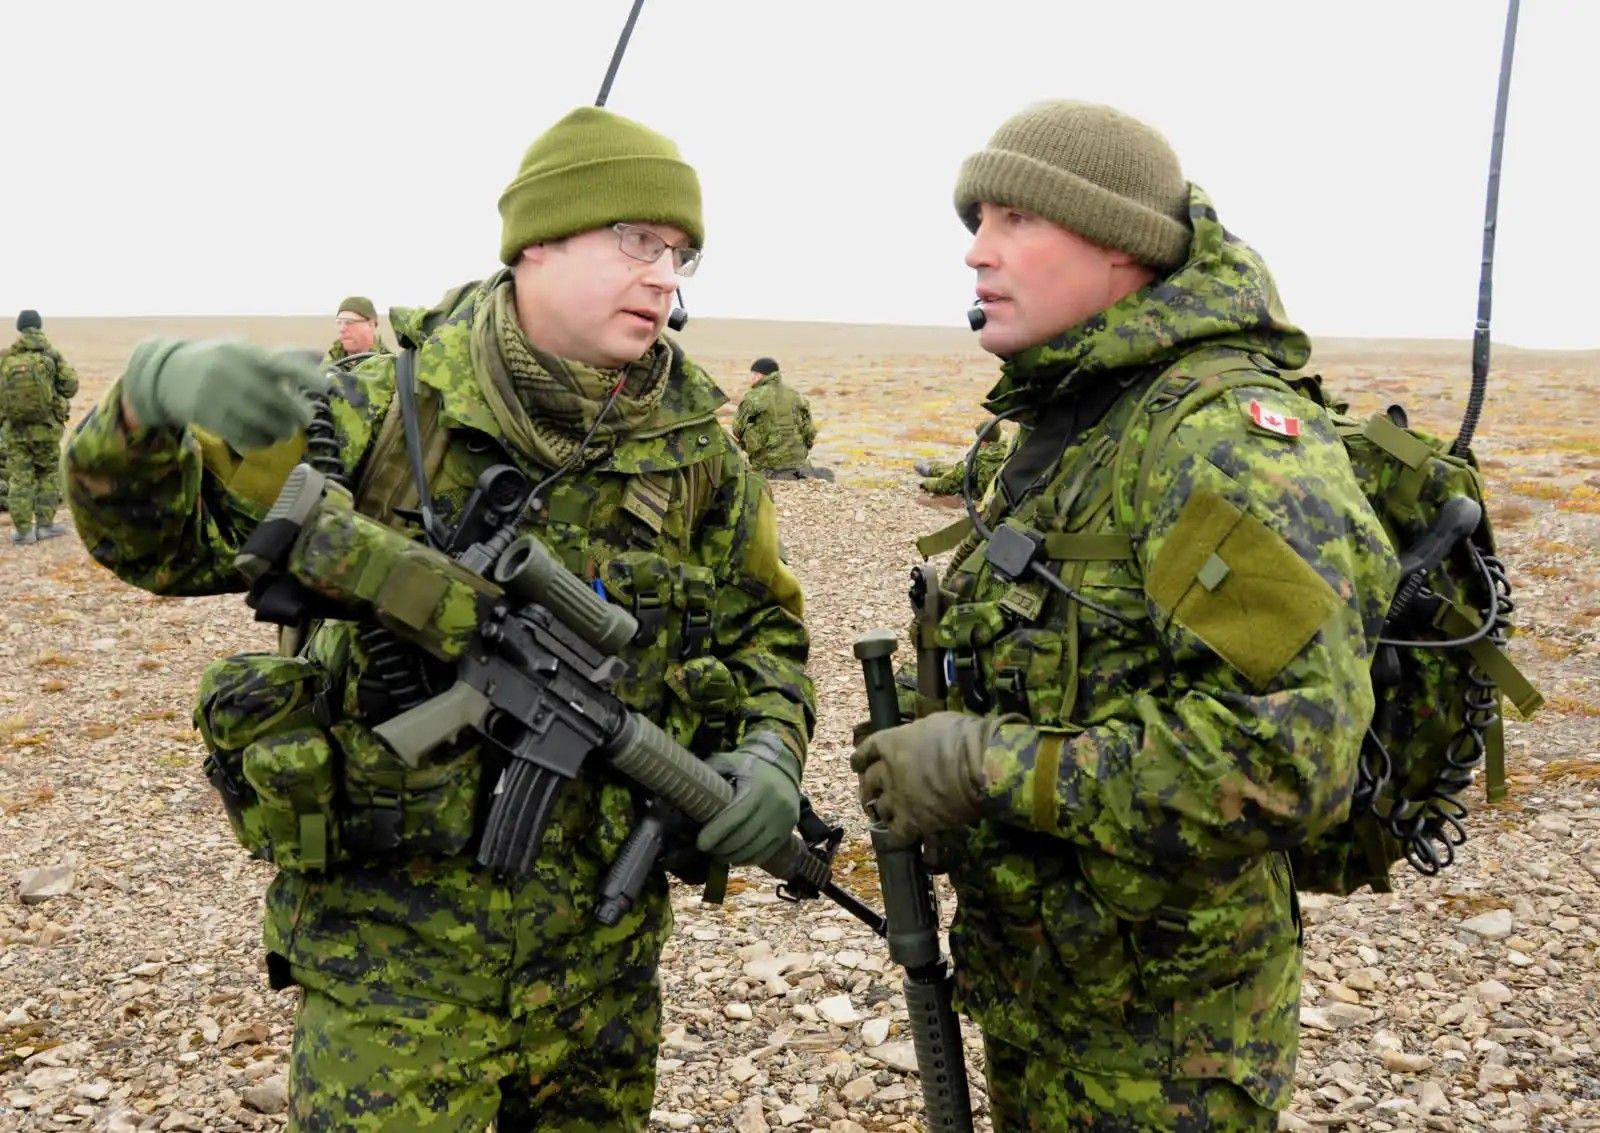 Canadian Special Forces Uniform - Year of Clean Water